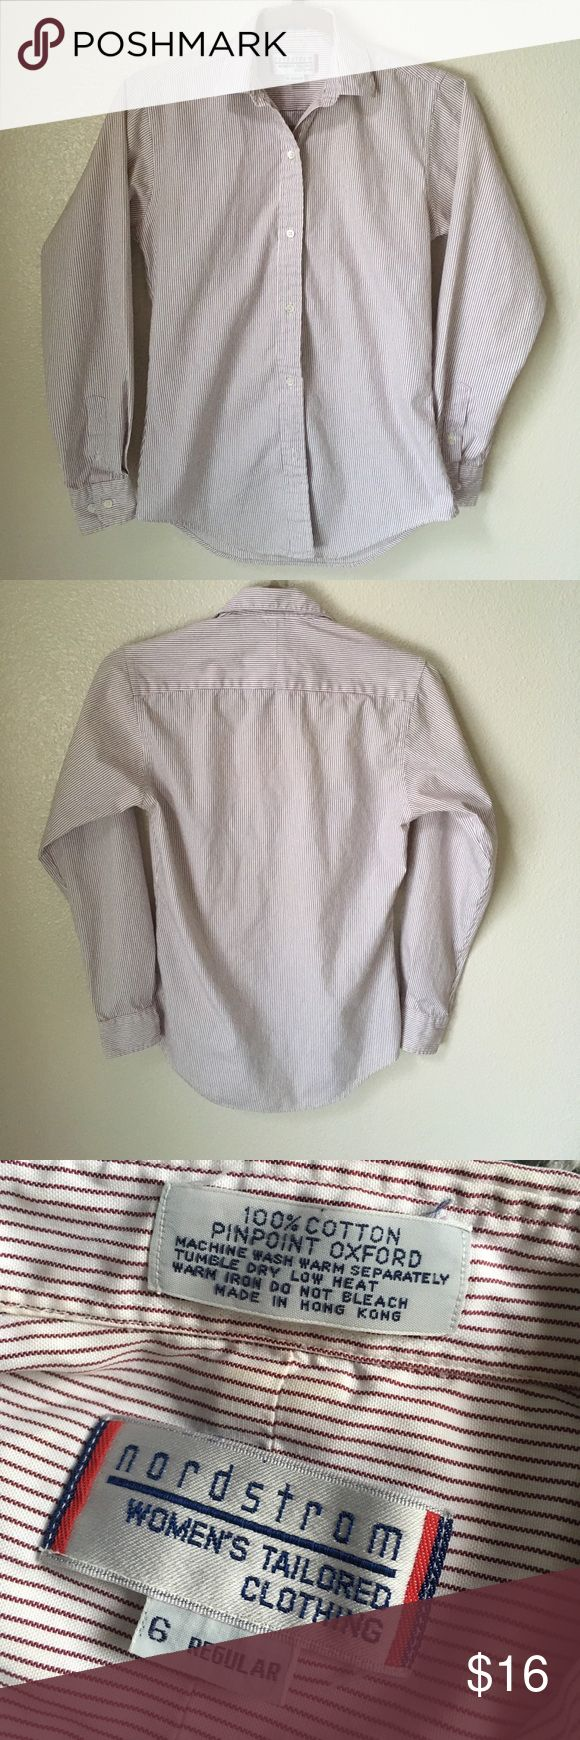 Vintage Nordstrom Pinpoint Oxford Button Down Great quality and very classy. Pinpoint Oxford from Nordstrom Women's Tailored Clothing. Size 6 regular. Armpit to armpit 17 in across, sleeve about 27.5 in, sleeve opening about 3.25 in or smaller. About 28.5 in long. White with burgundy stripes, gives the illusion of it being kind of pink (at least to me.) Nordstrom Tops Button Down Shirts